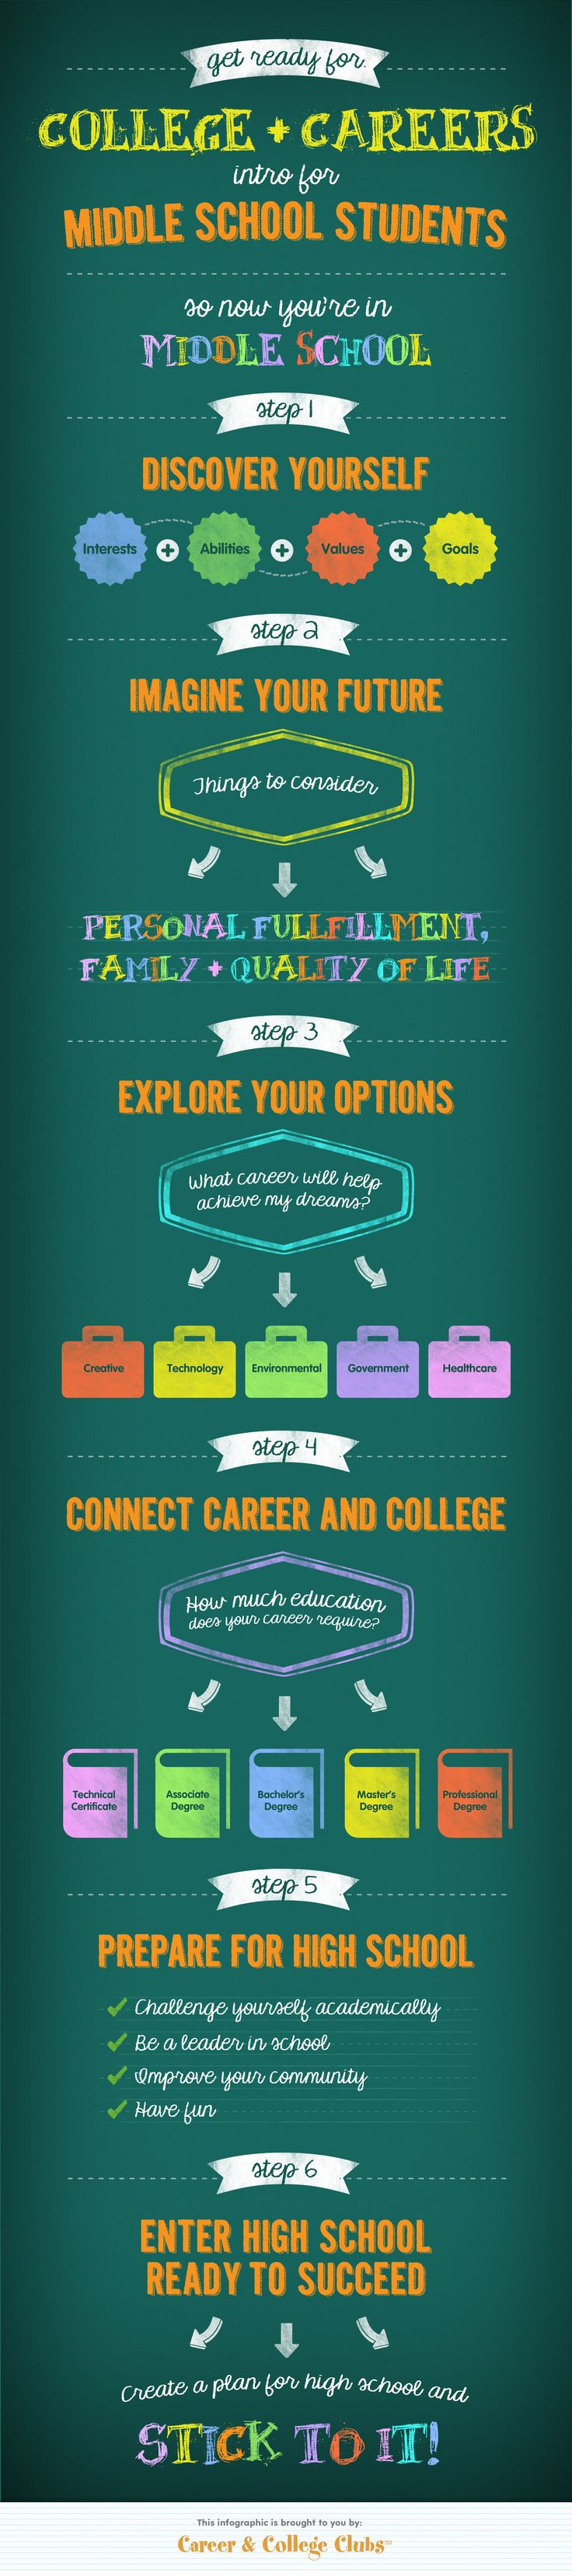 Career & College Clubs has designed a fun and easy-to-follow infographic that gives middle school students the essential steps to prepare for high sch